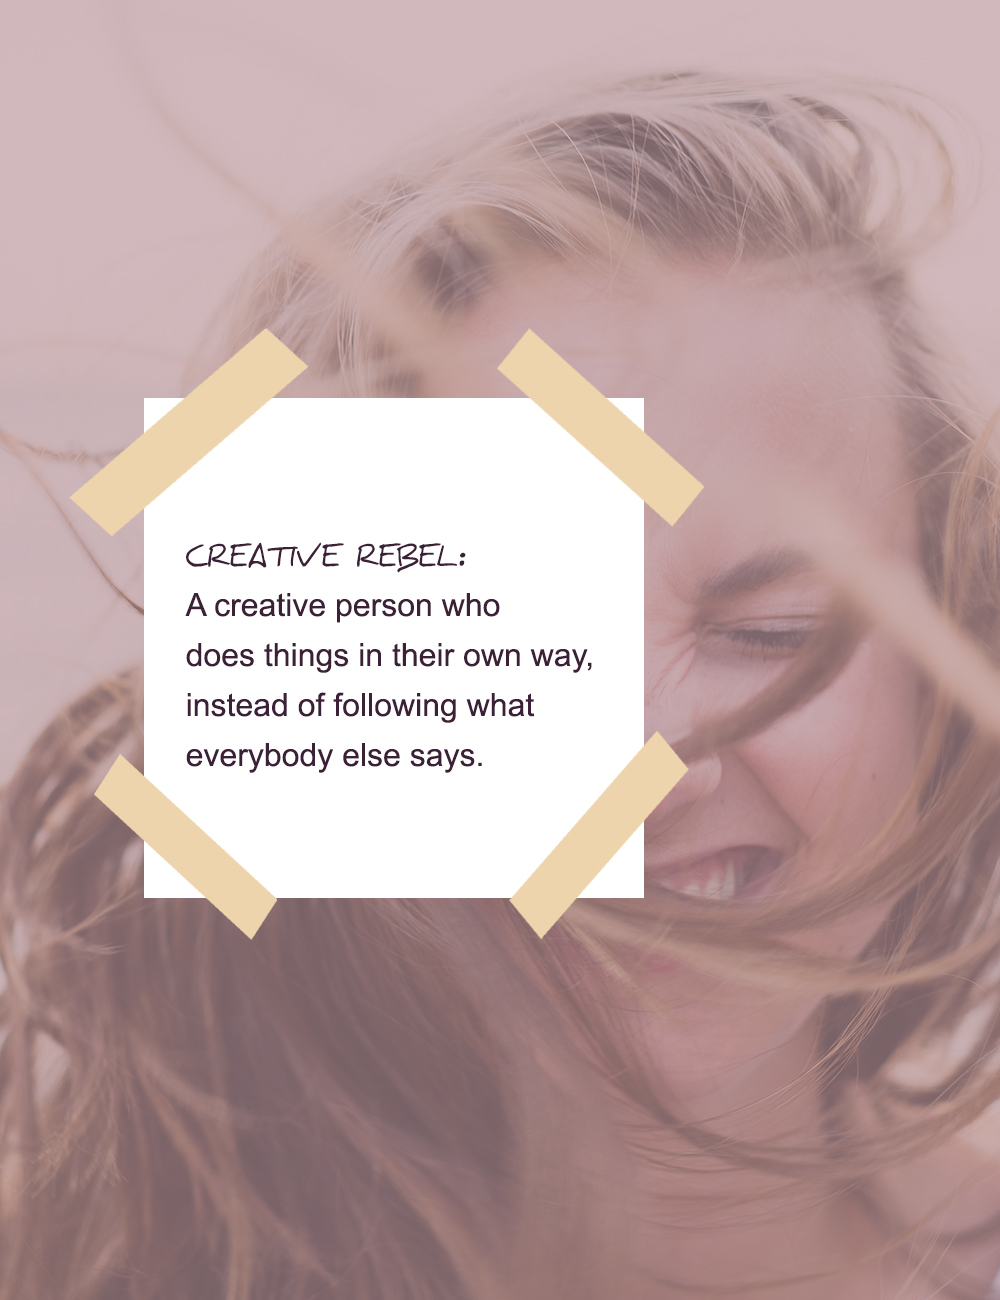 What is a creative rebel? (quote)